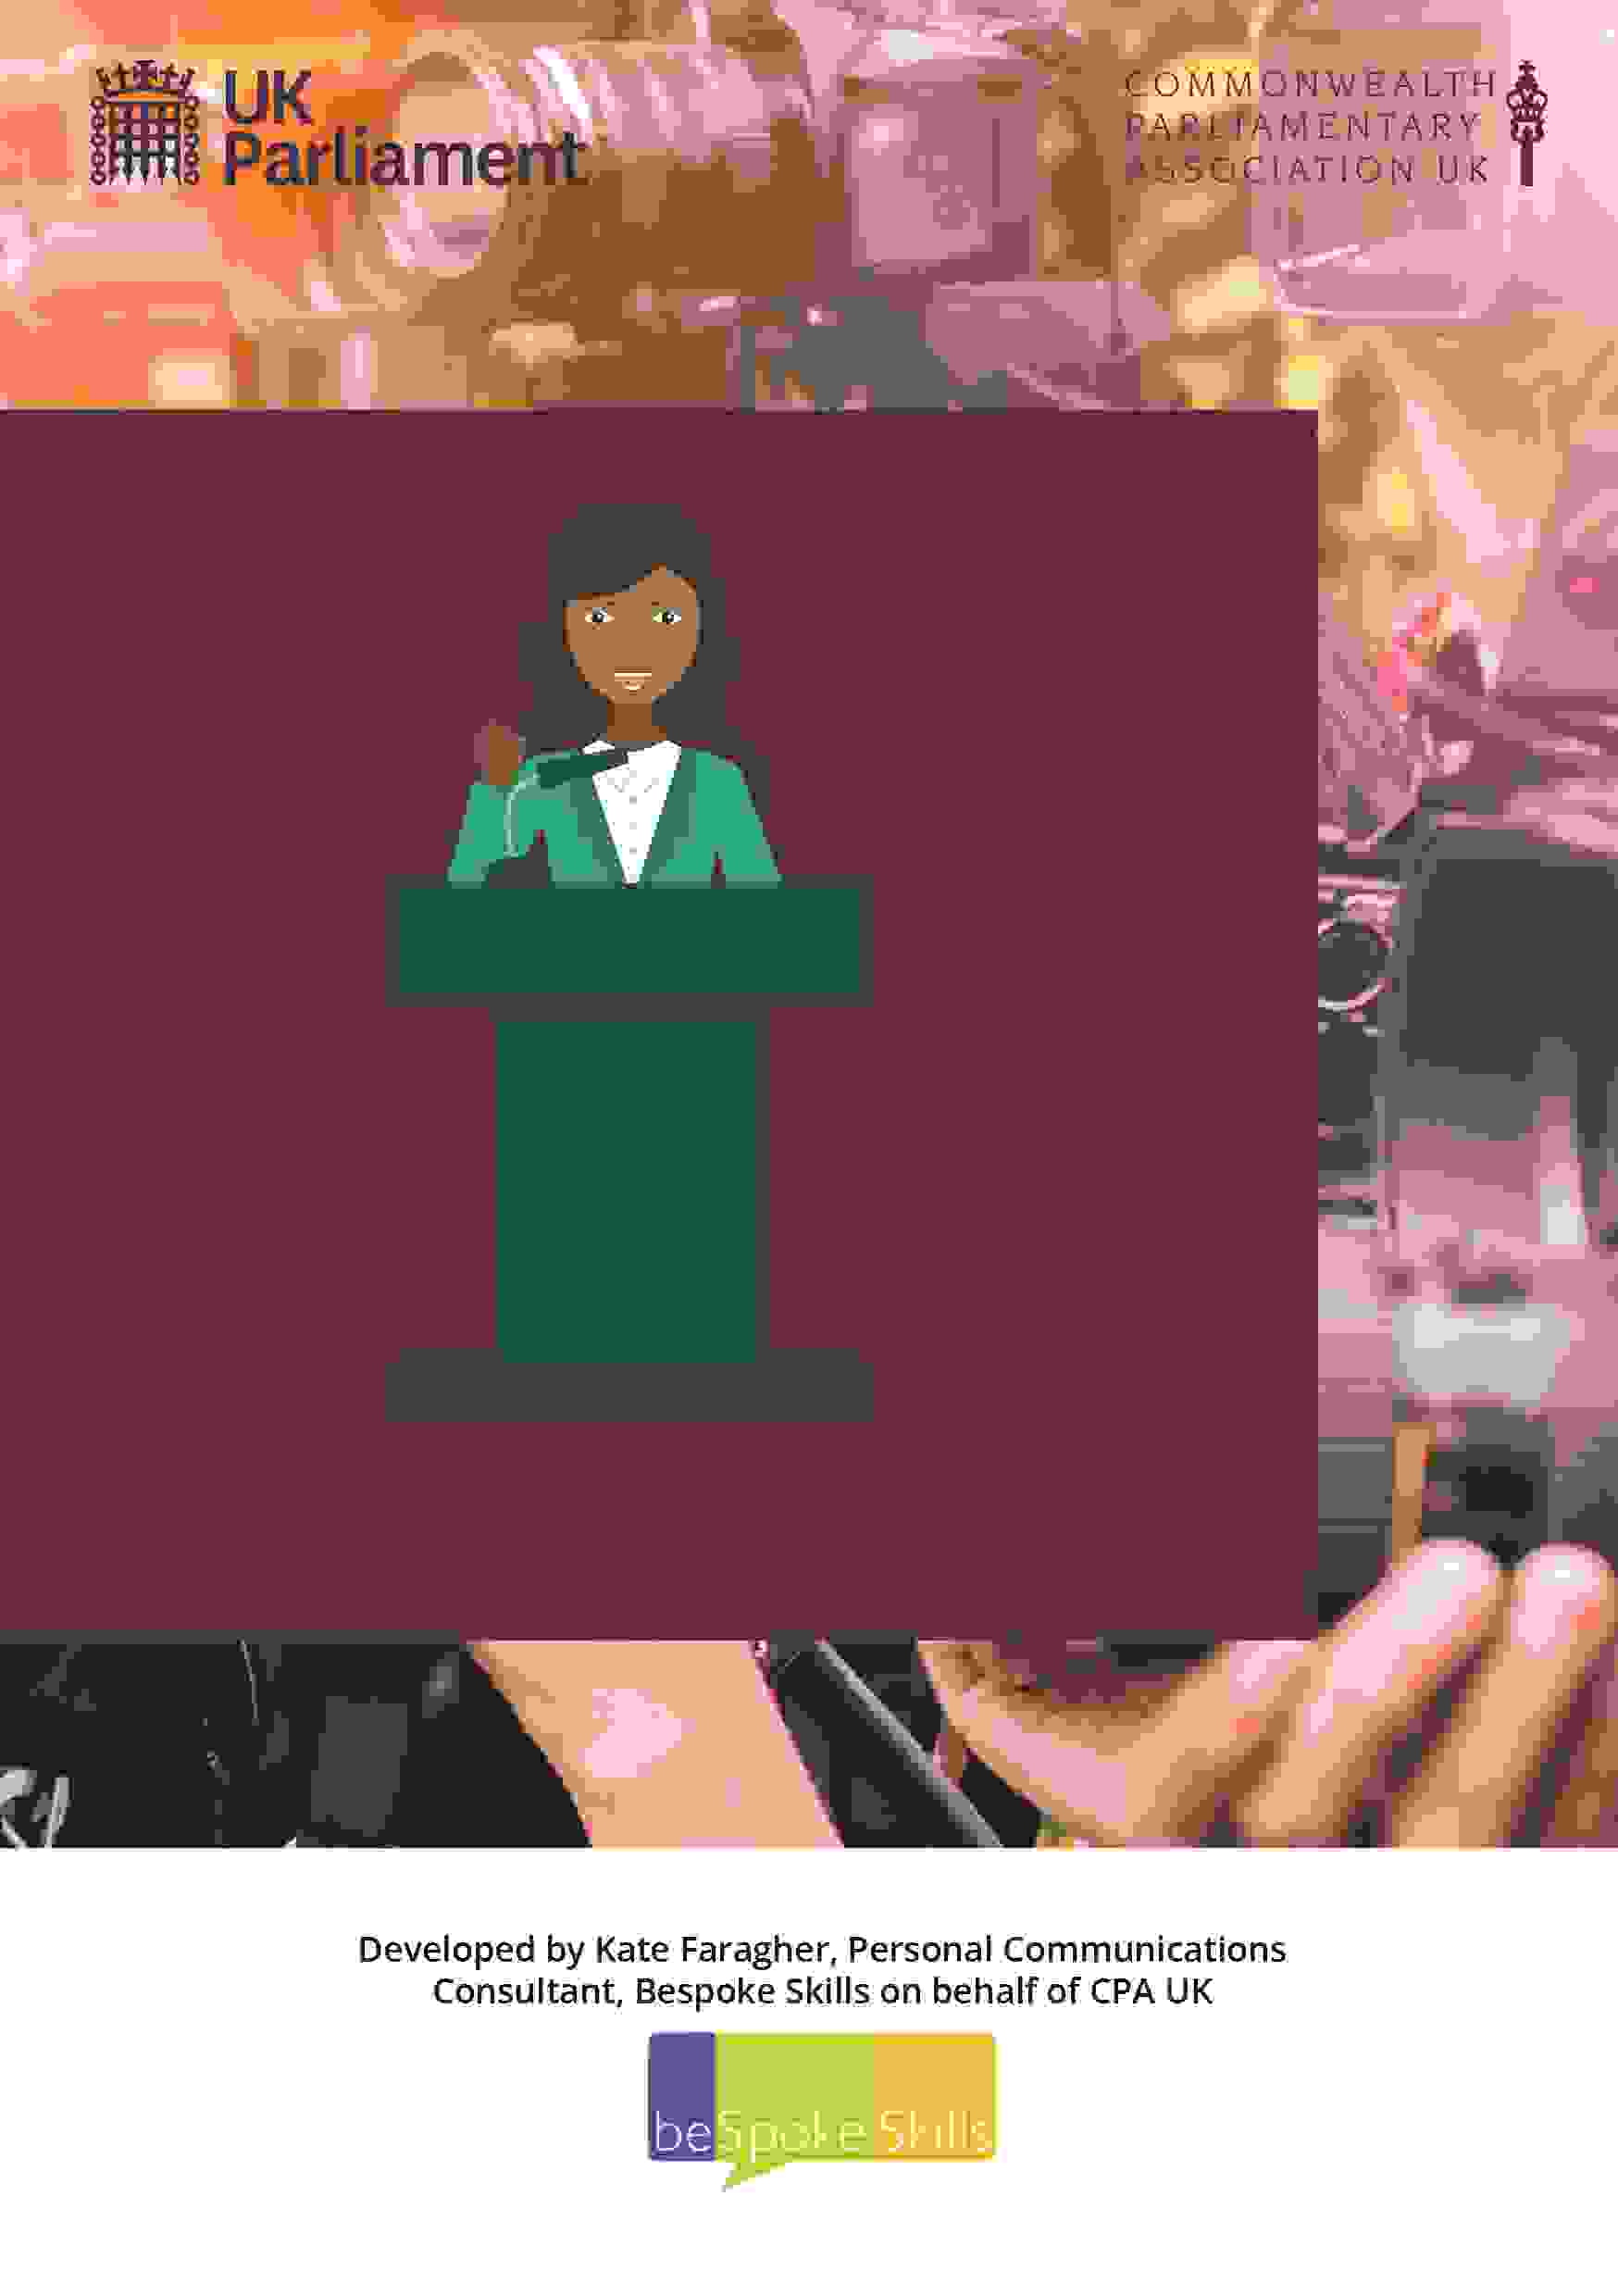 CPA UK Launches its new Communications Handbook for Women Parliamentarians listing image